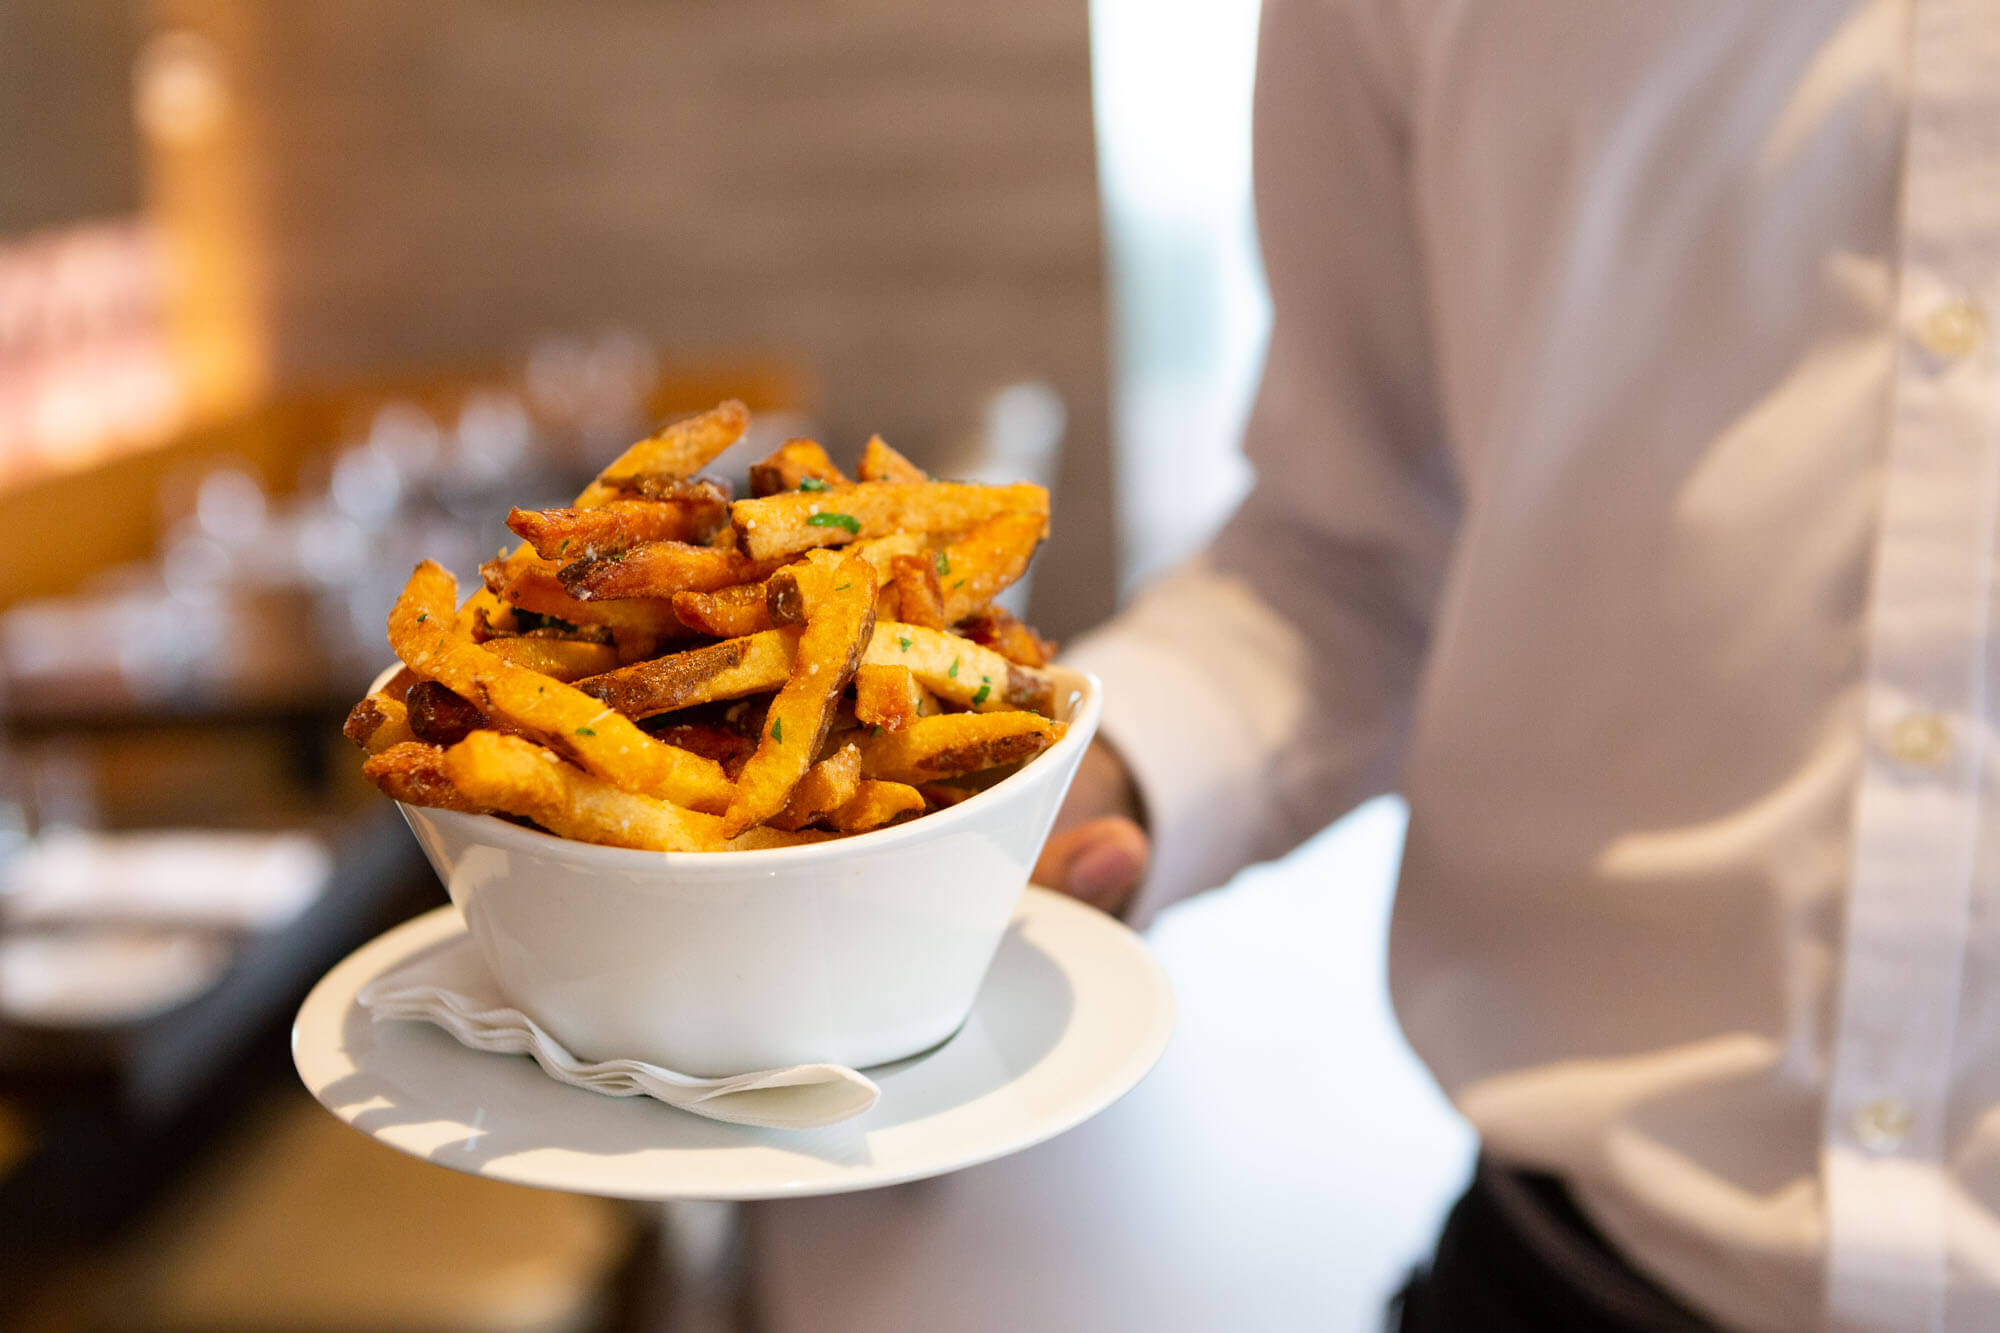 Server's torso holding out a bowl of french fries on a white ceramic dish